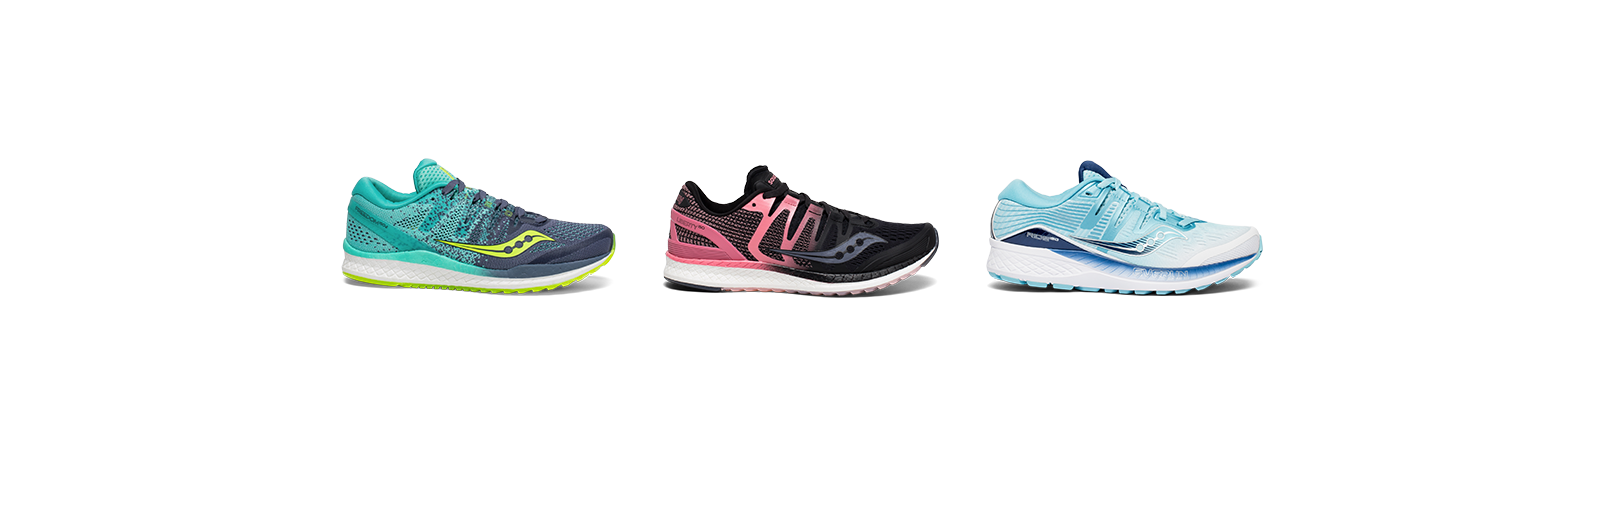 Saucony | New Colors